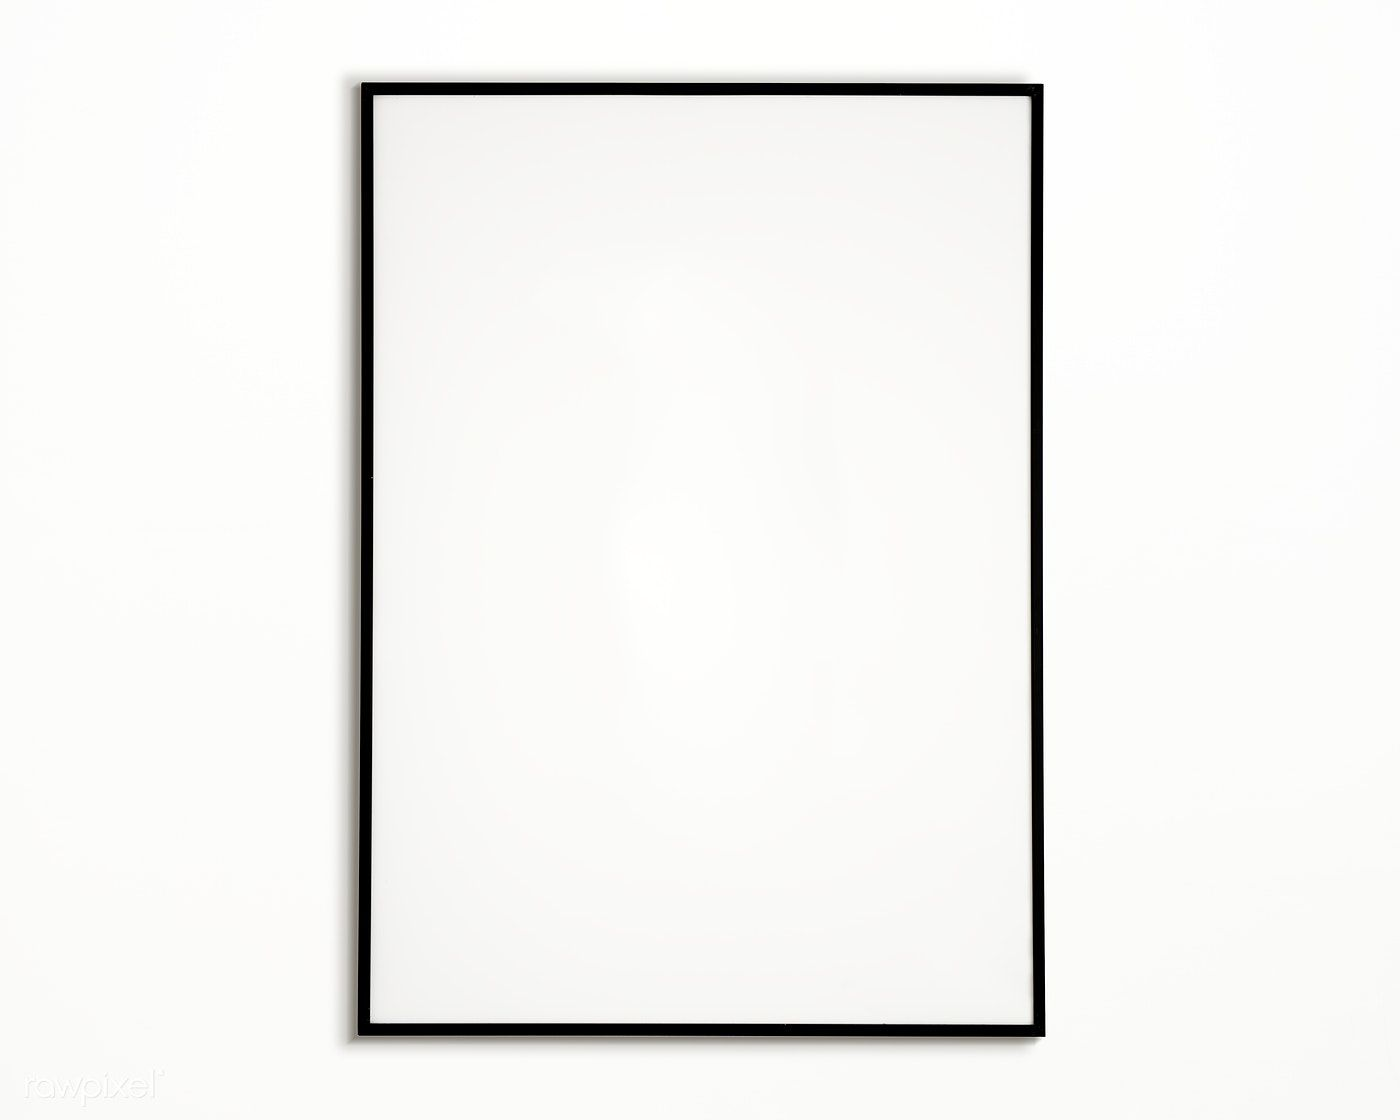 Download Premium Psd Of One Photo Frame Isolated On White Wall 328101